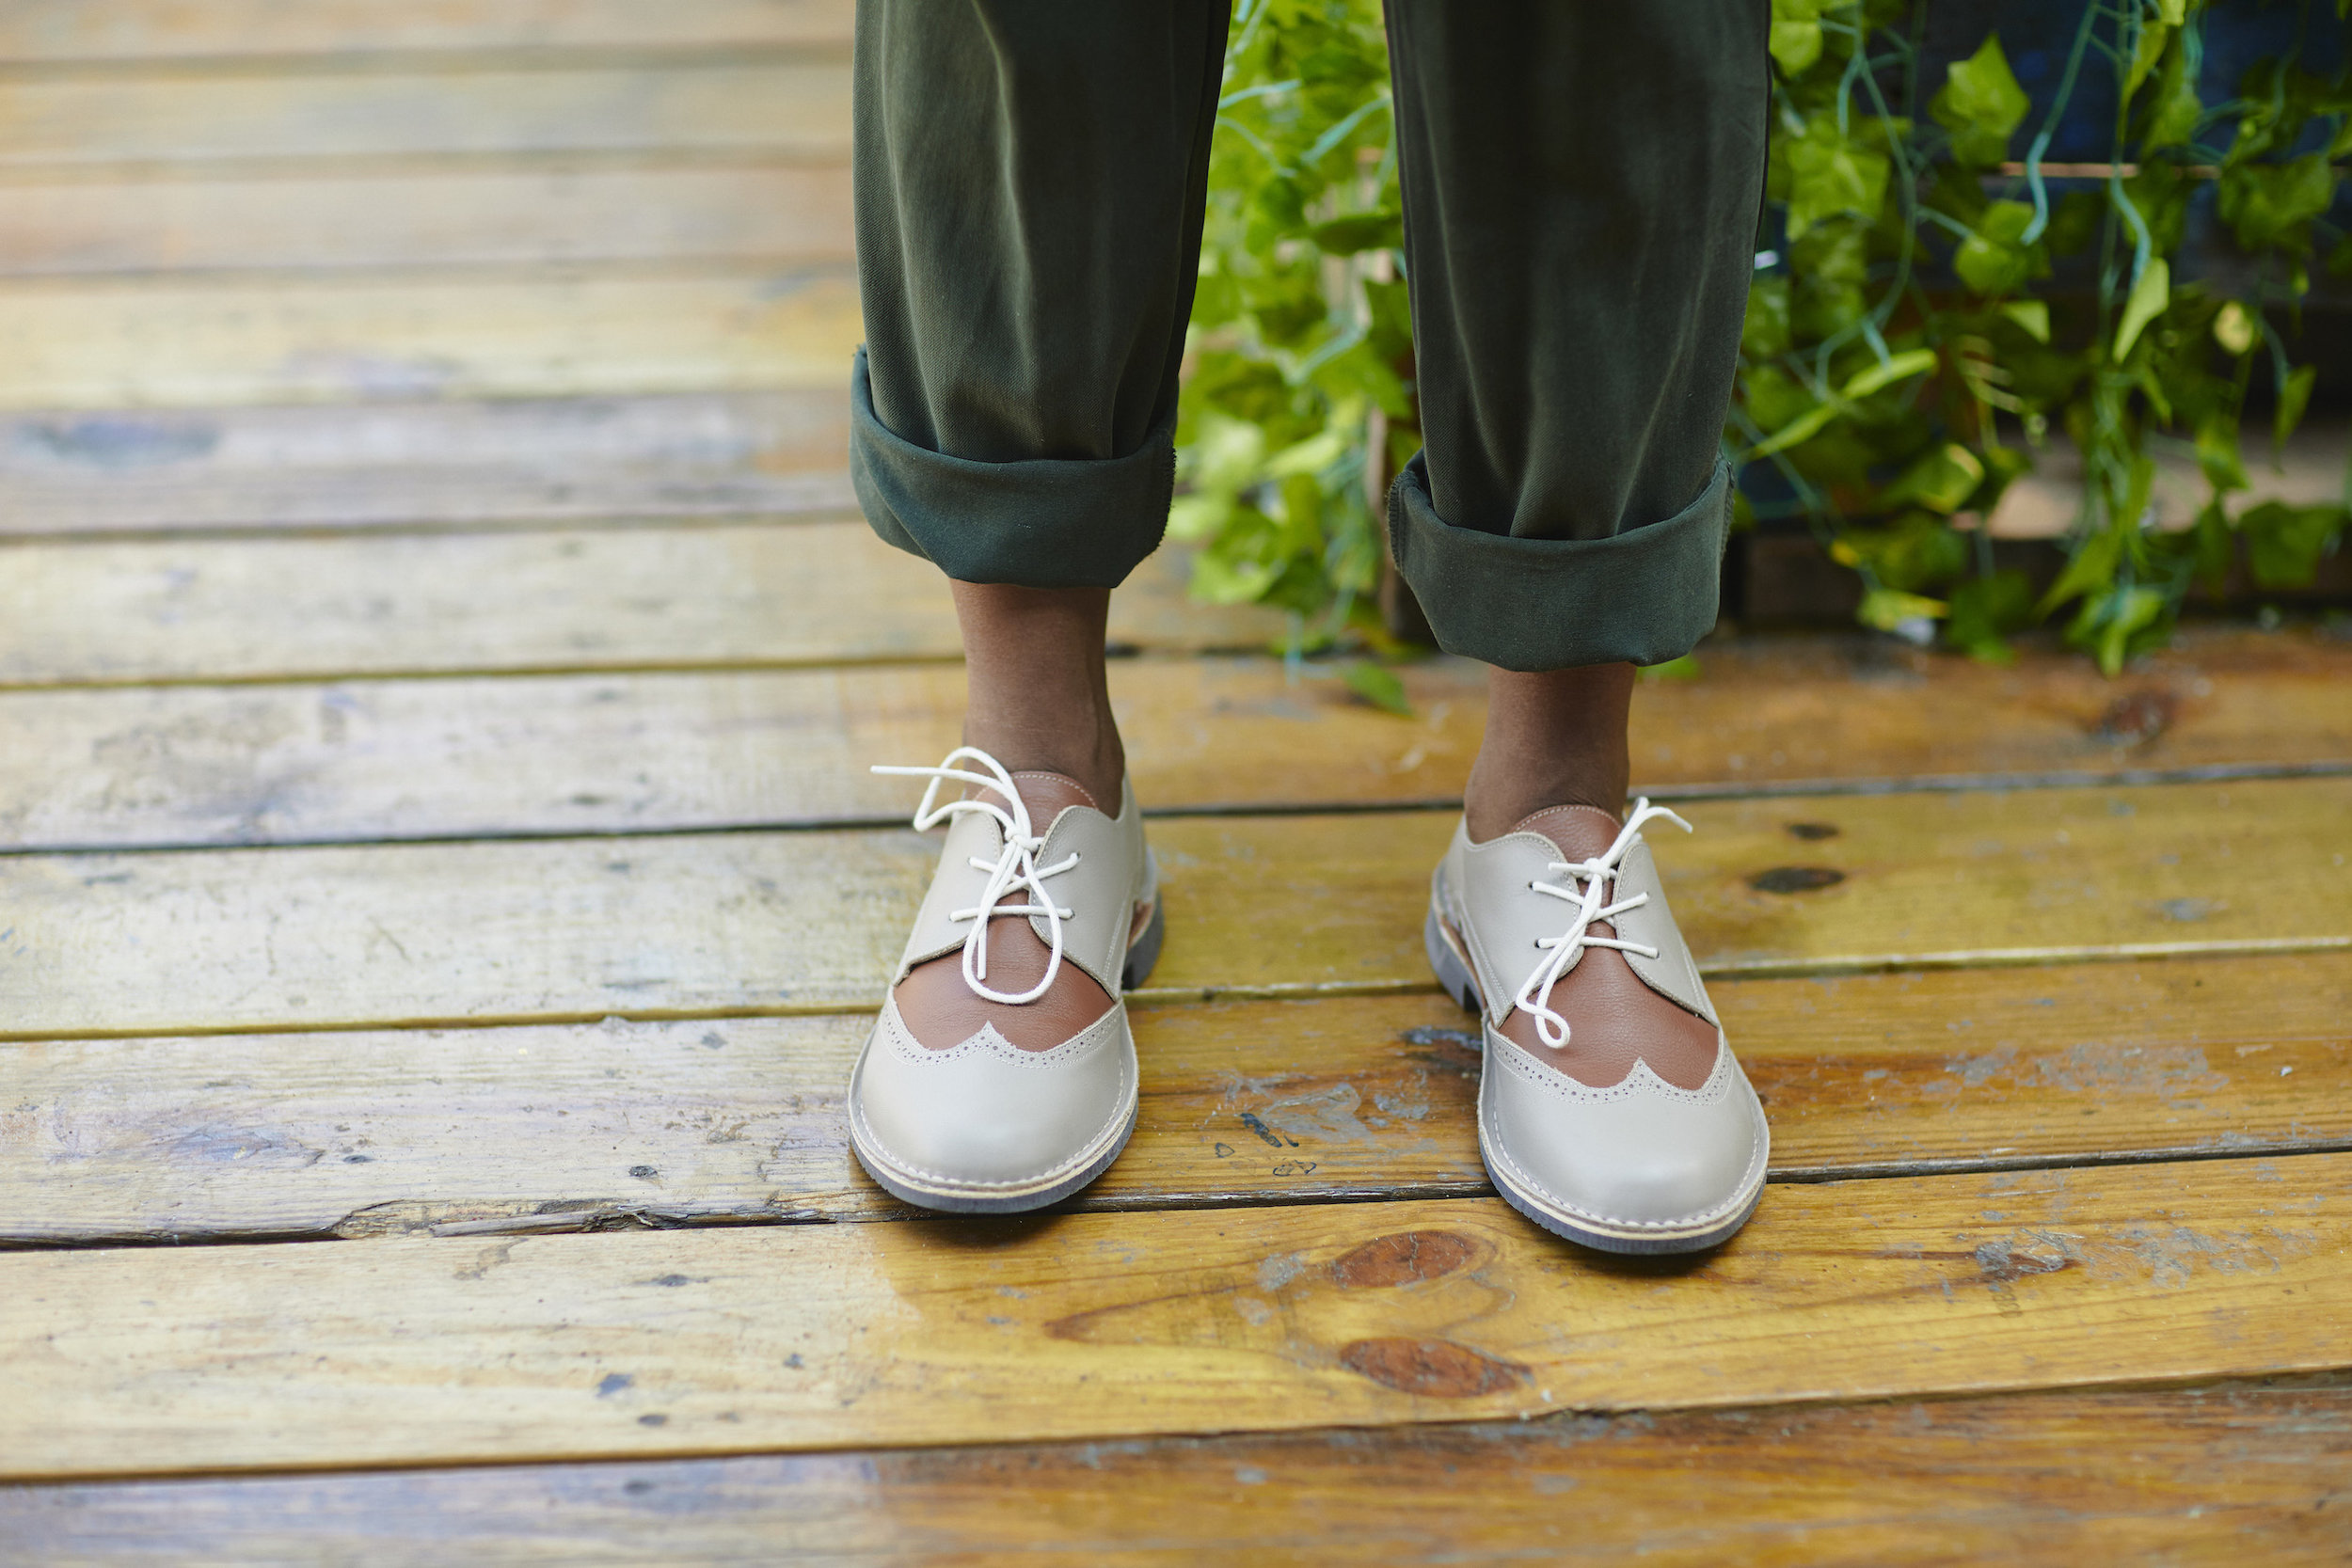 Mamahuhu Oxford shoes // A Week Of Outfits With Dominique Drakeford, Founder Of Melanin & Sustainable Style on The Good Trade